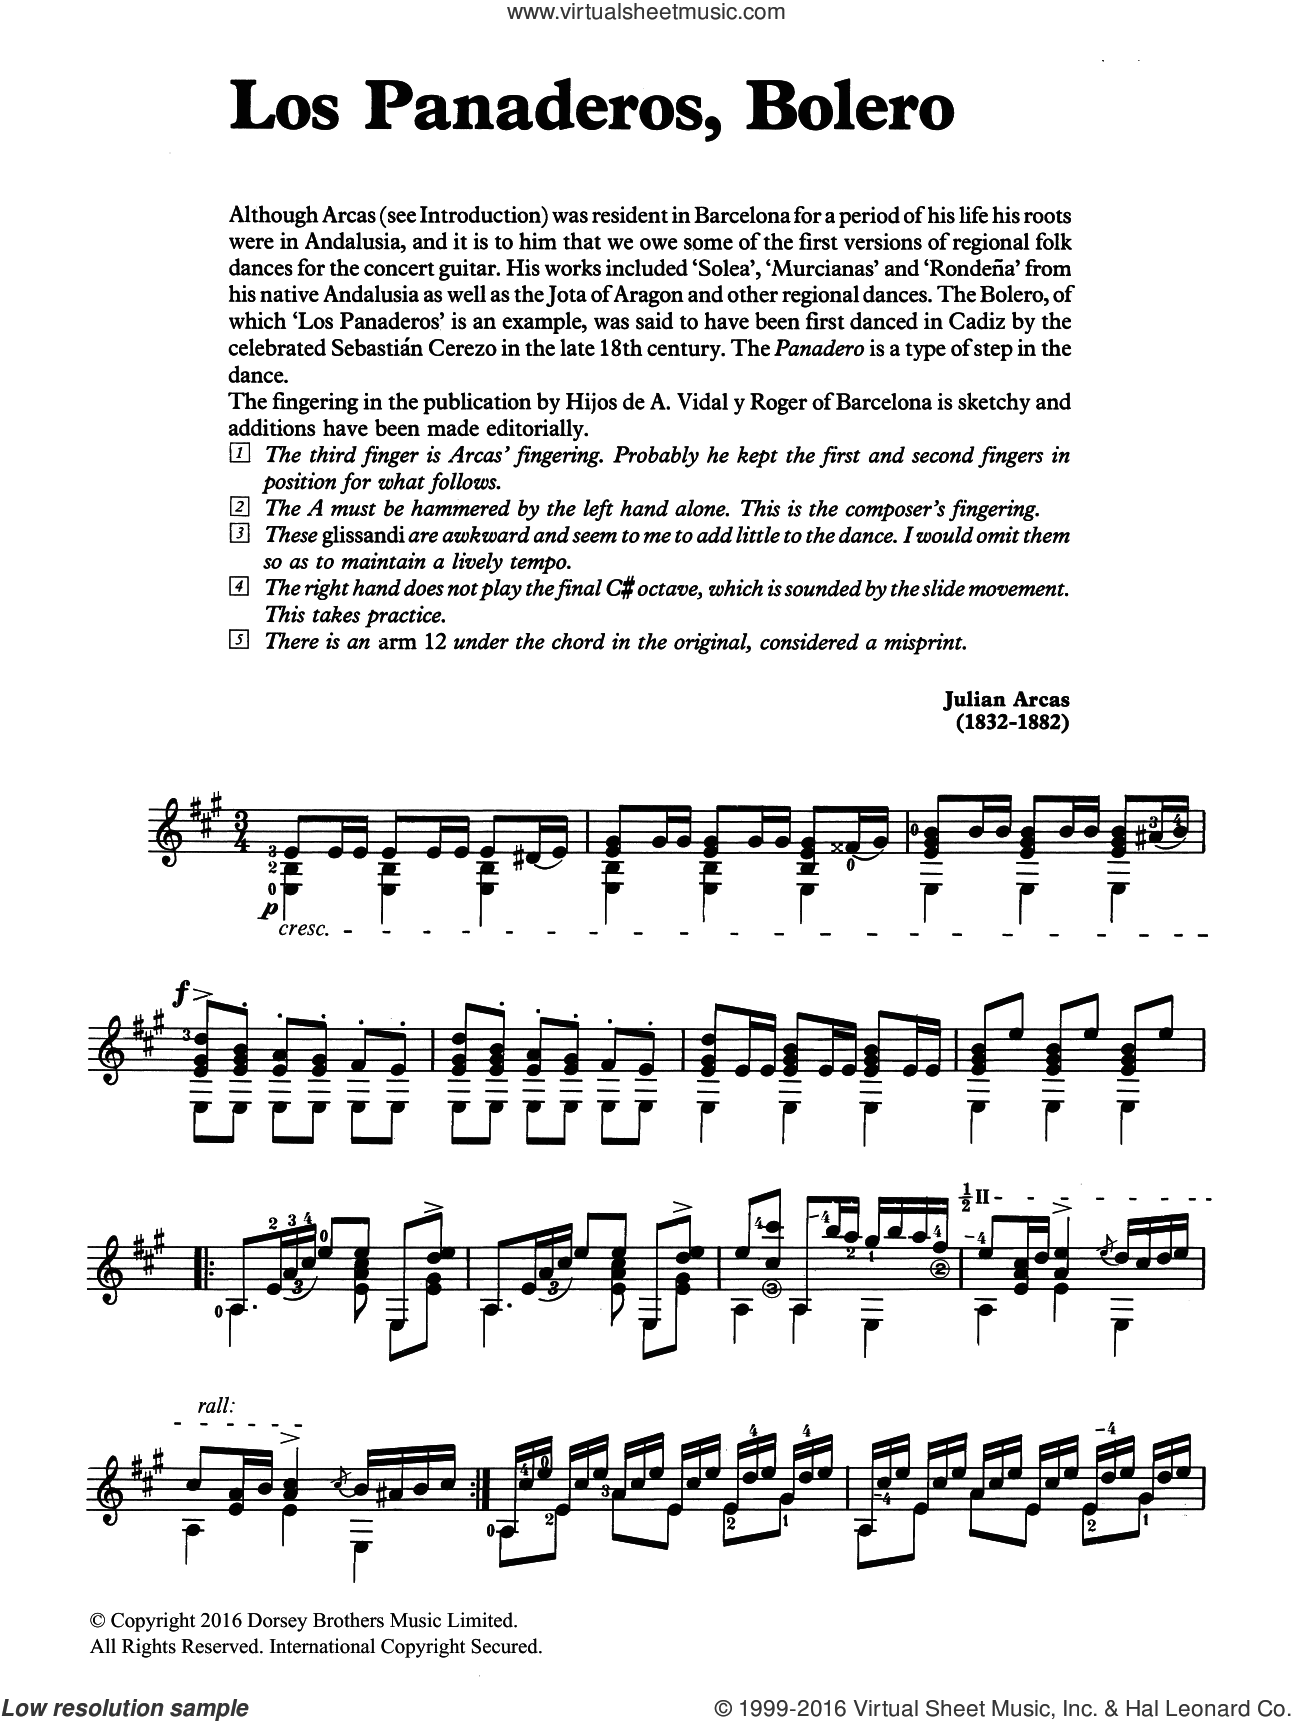 Los Panaderos, Bolero sheet music for guitar solo (chords) by Julian Arcas. Score Image Preview.